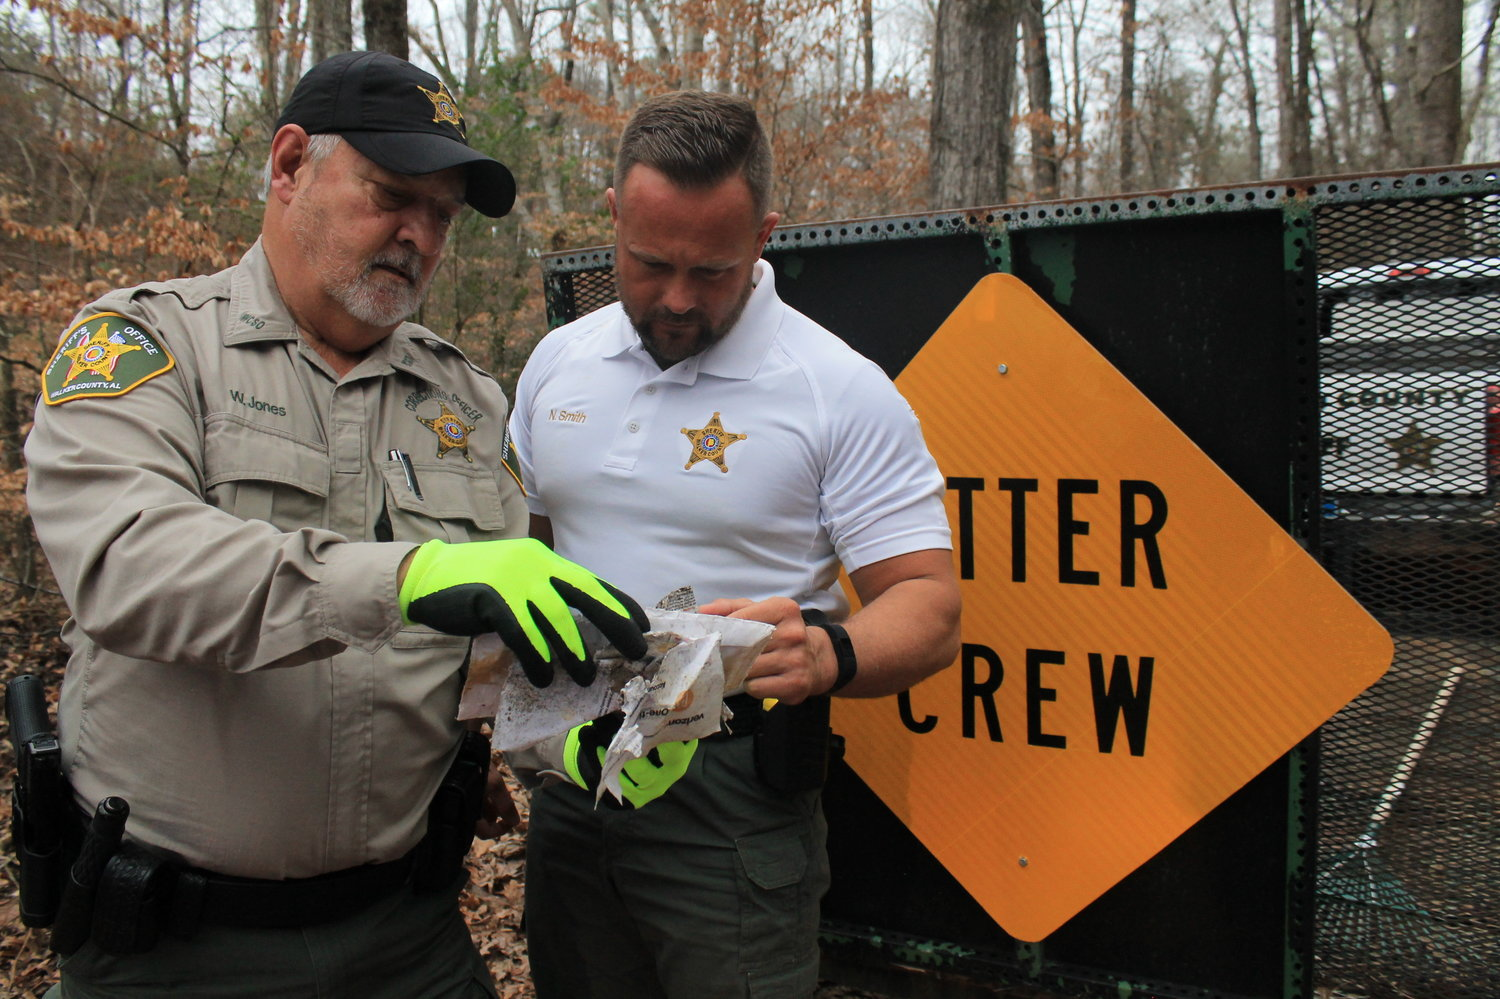 Wayne Jones, a corrections officer who supervises inmates working on one of the county's litter crews, shows Sheriff Nick Smith several documents that identify individuals believes to be responsible for illegal dumping.